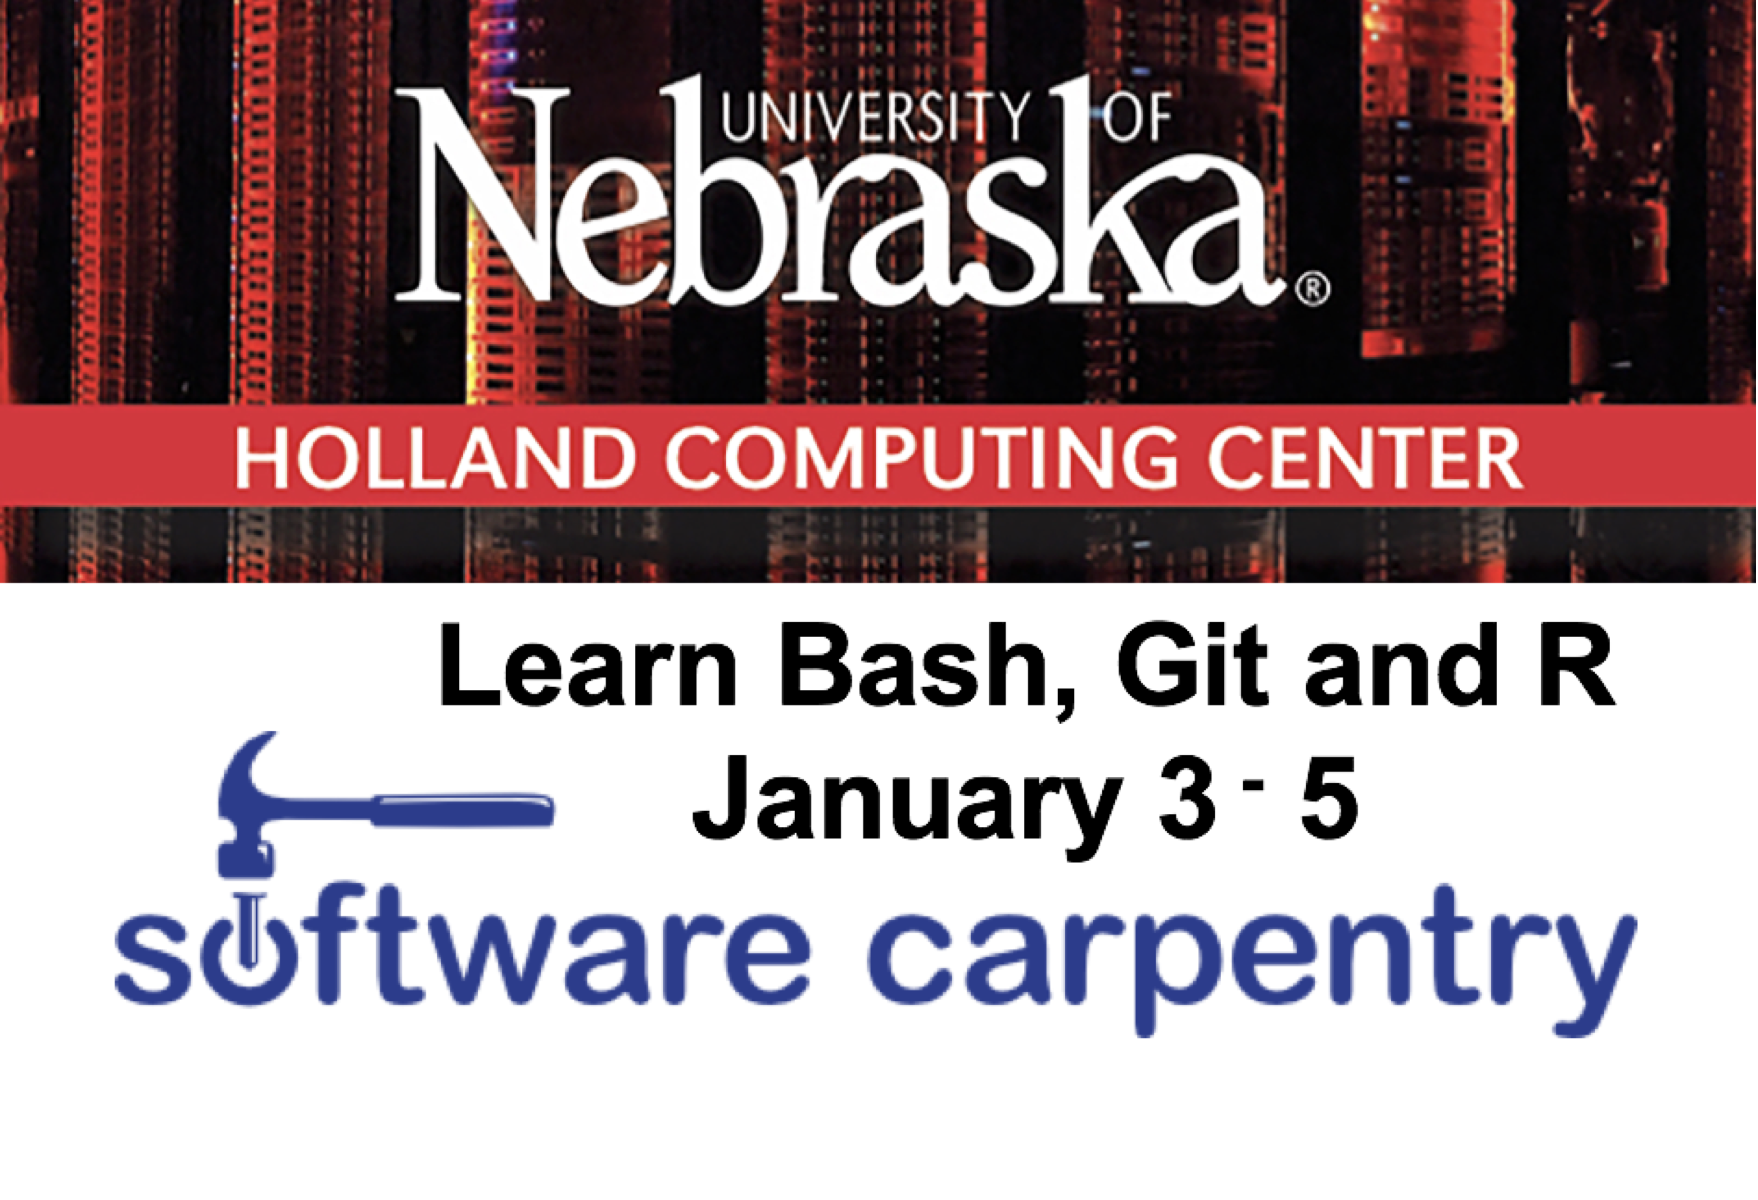 Since 1998, Software Carpentry has been teaching researchers the computing skills they need to get more done in less time and with less pain.